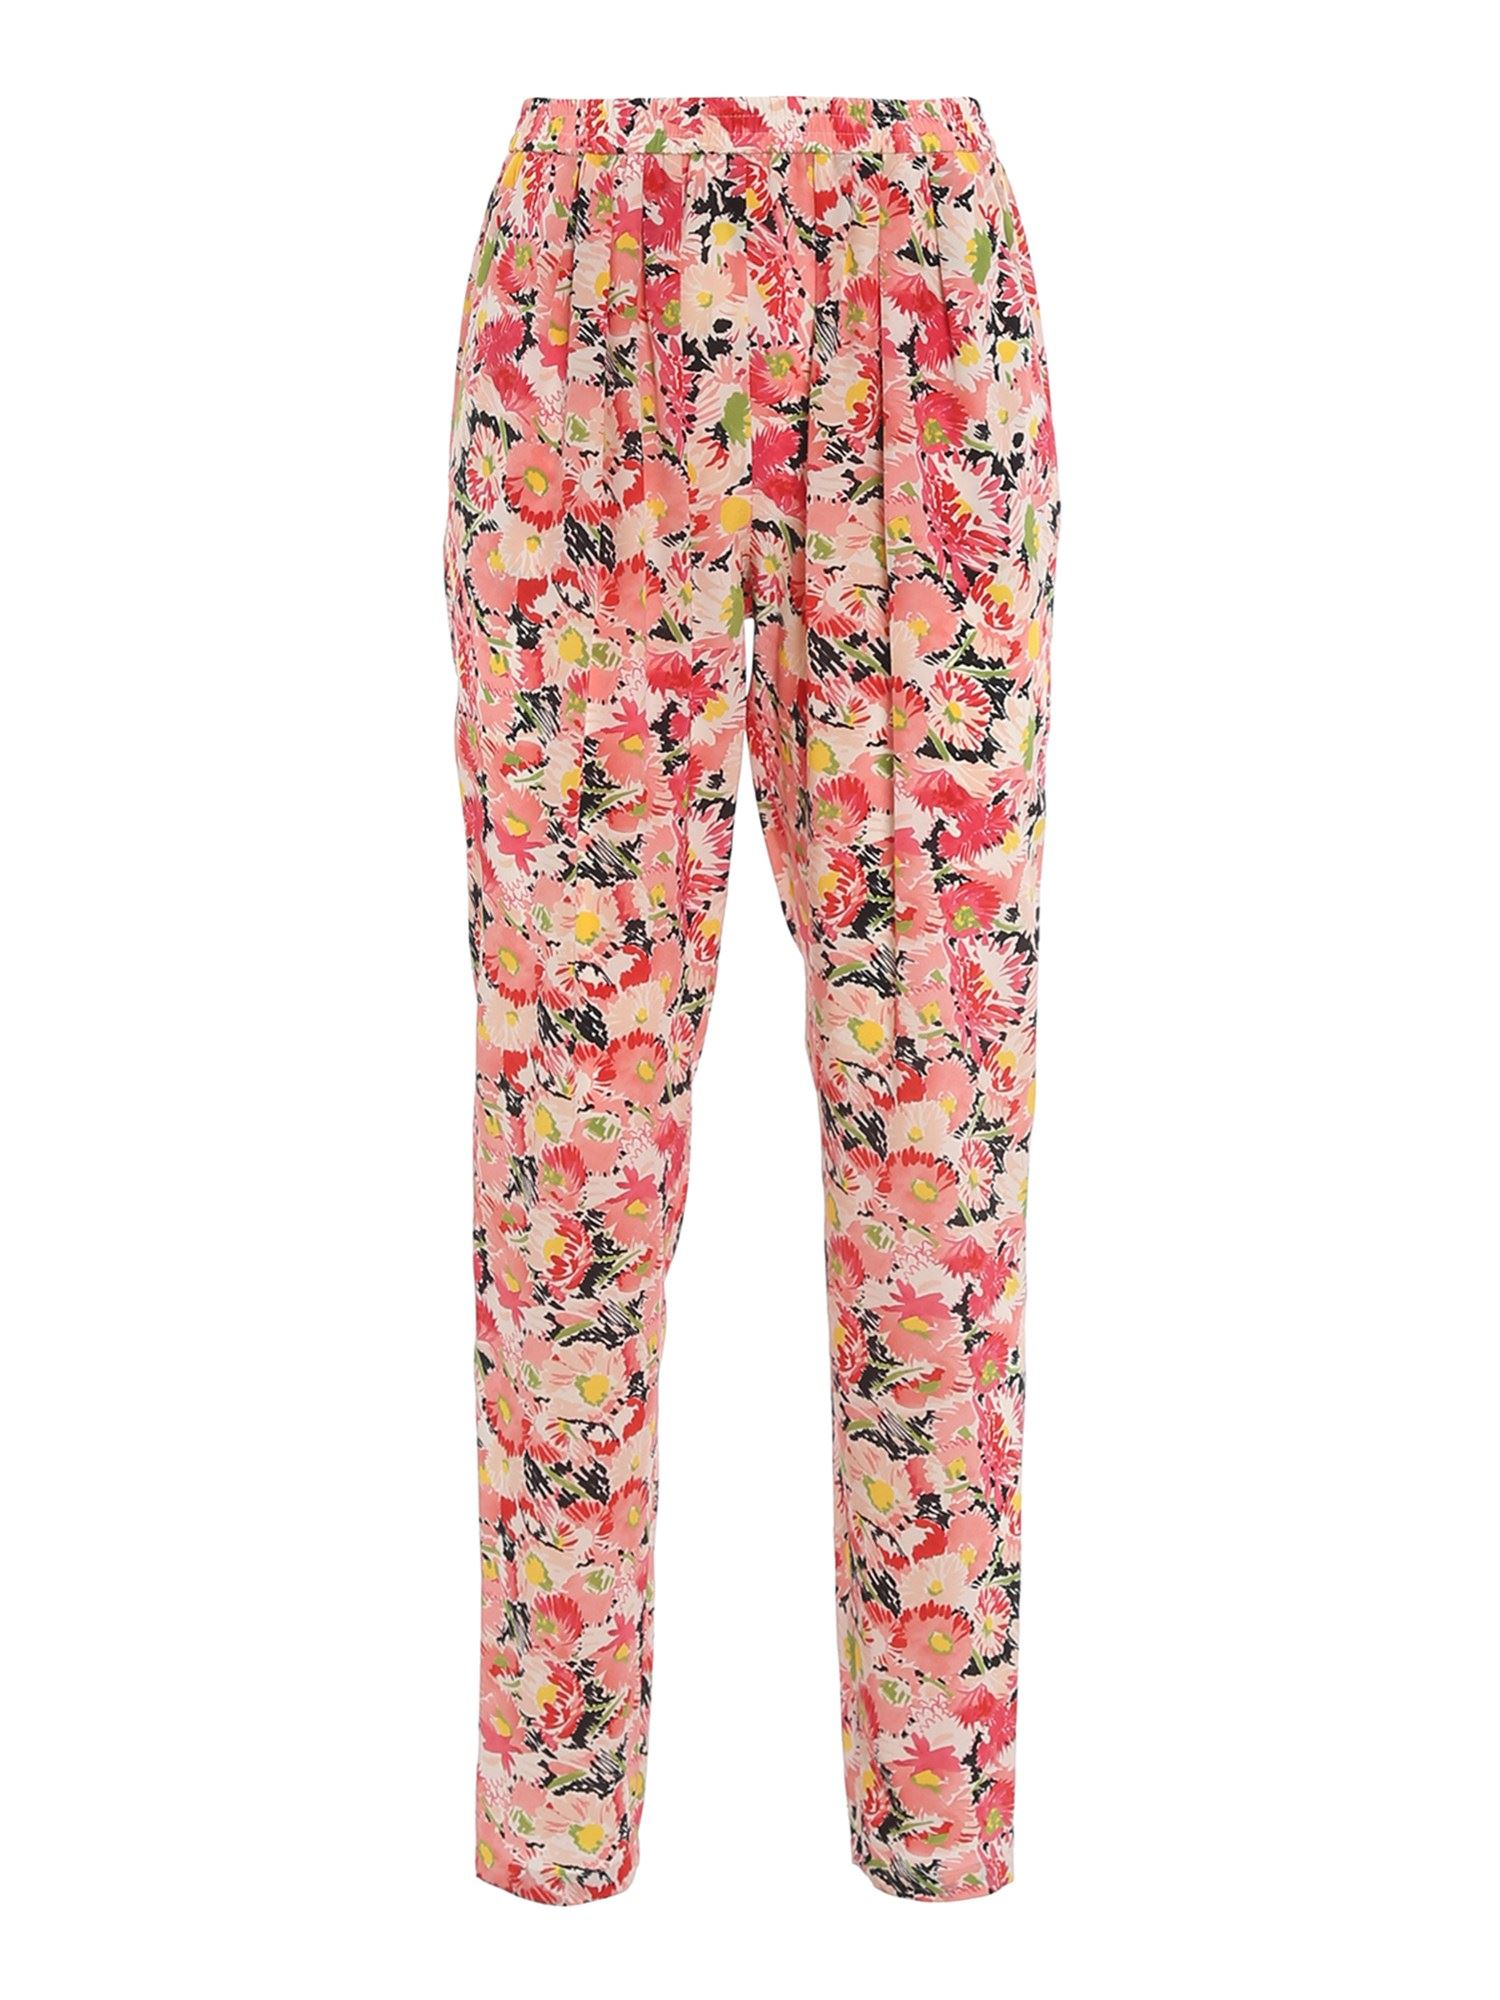 Stella Mccartney STELLA MCCARTNEY CHRISTINE TROUSERS IN PINK